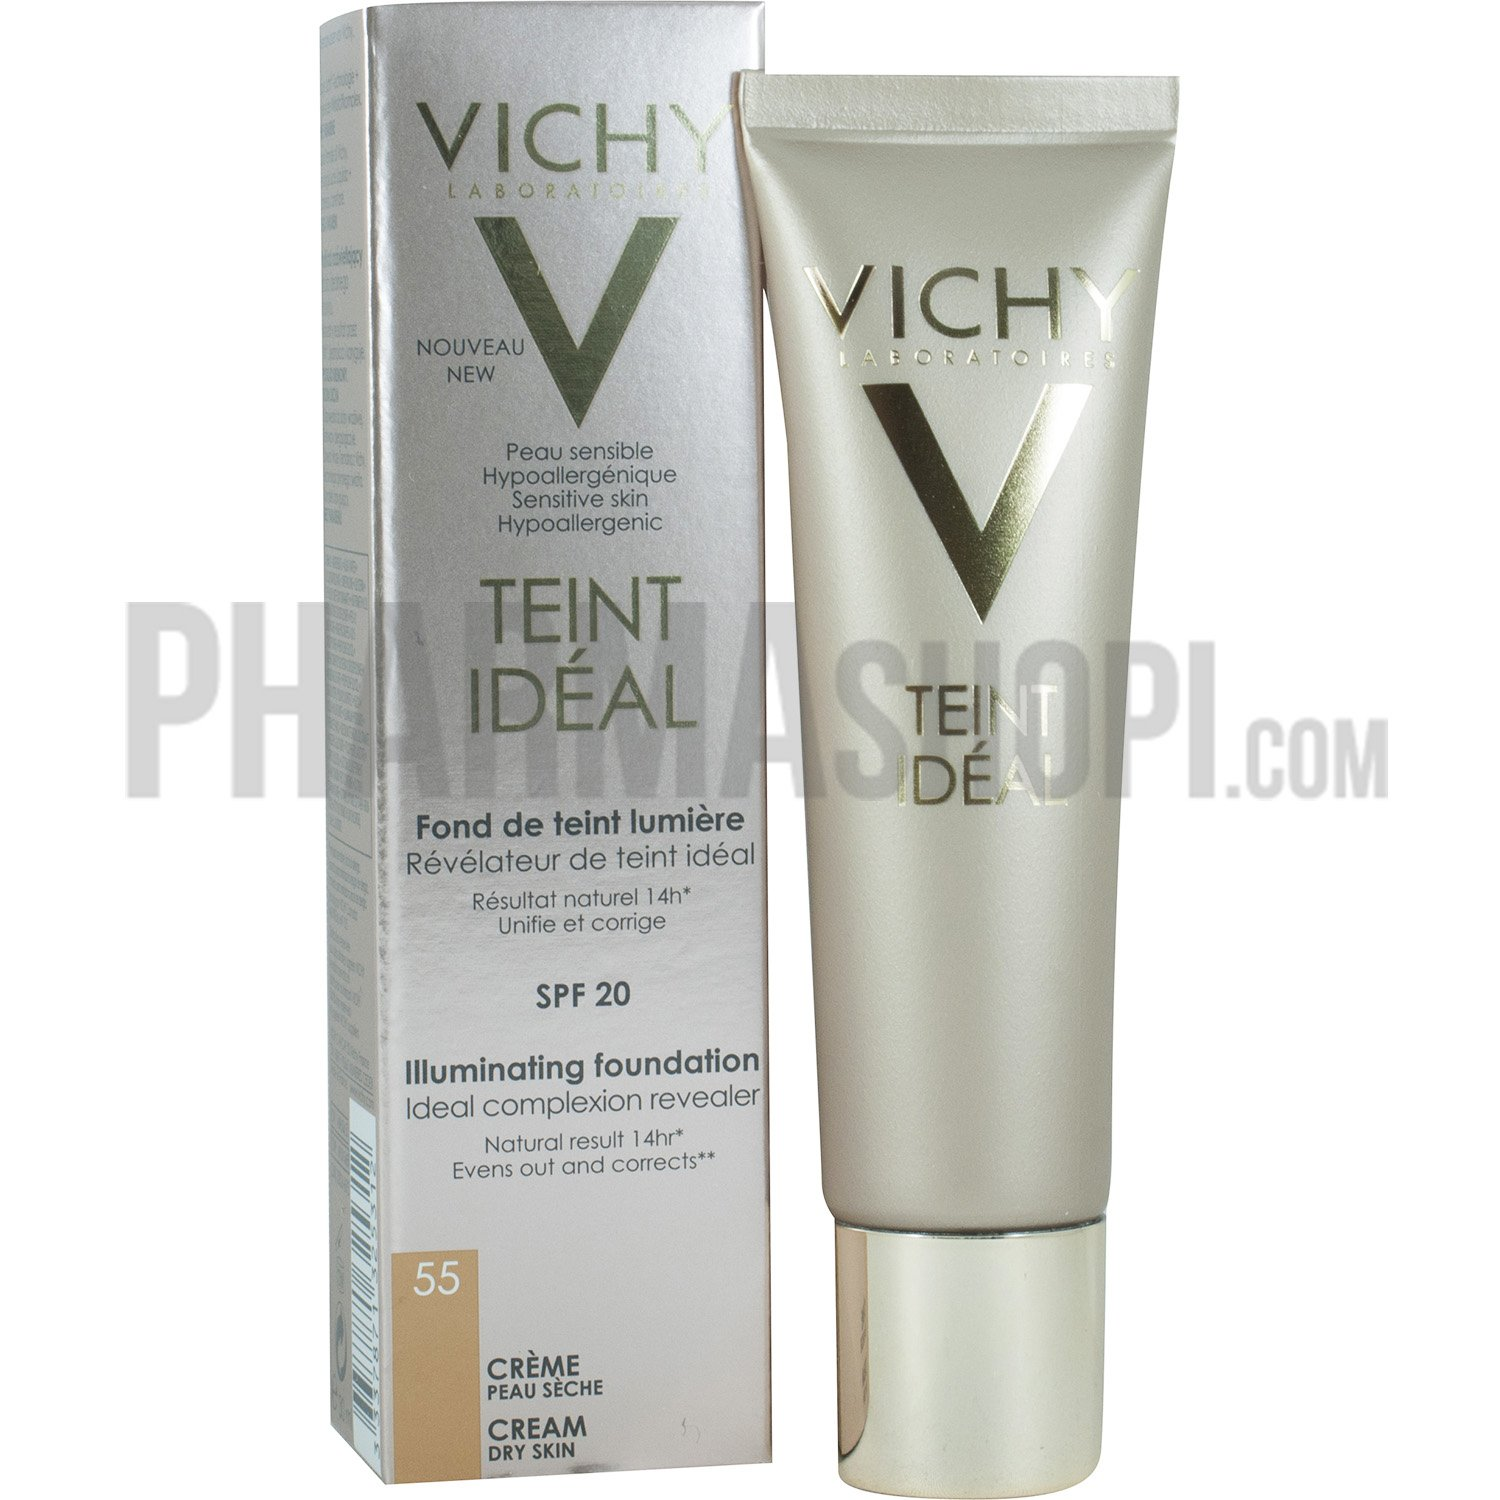 teint id al cr me fond de teint lumi re spf 20 teinte 55 h l vichy tube de 30 ml. Black Bedroom Furniture Sets. Home Design Ideas